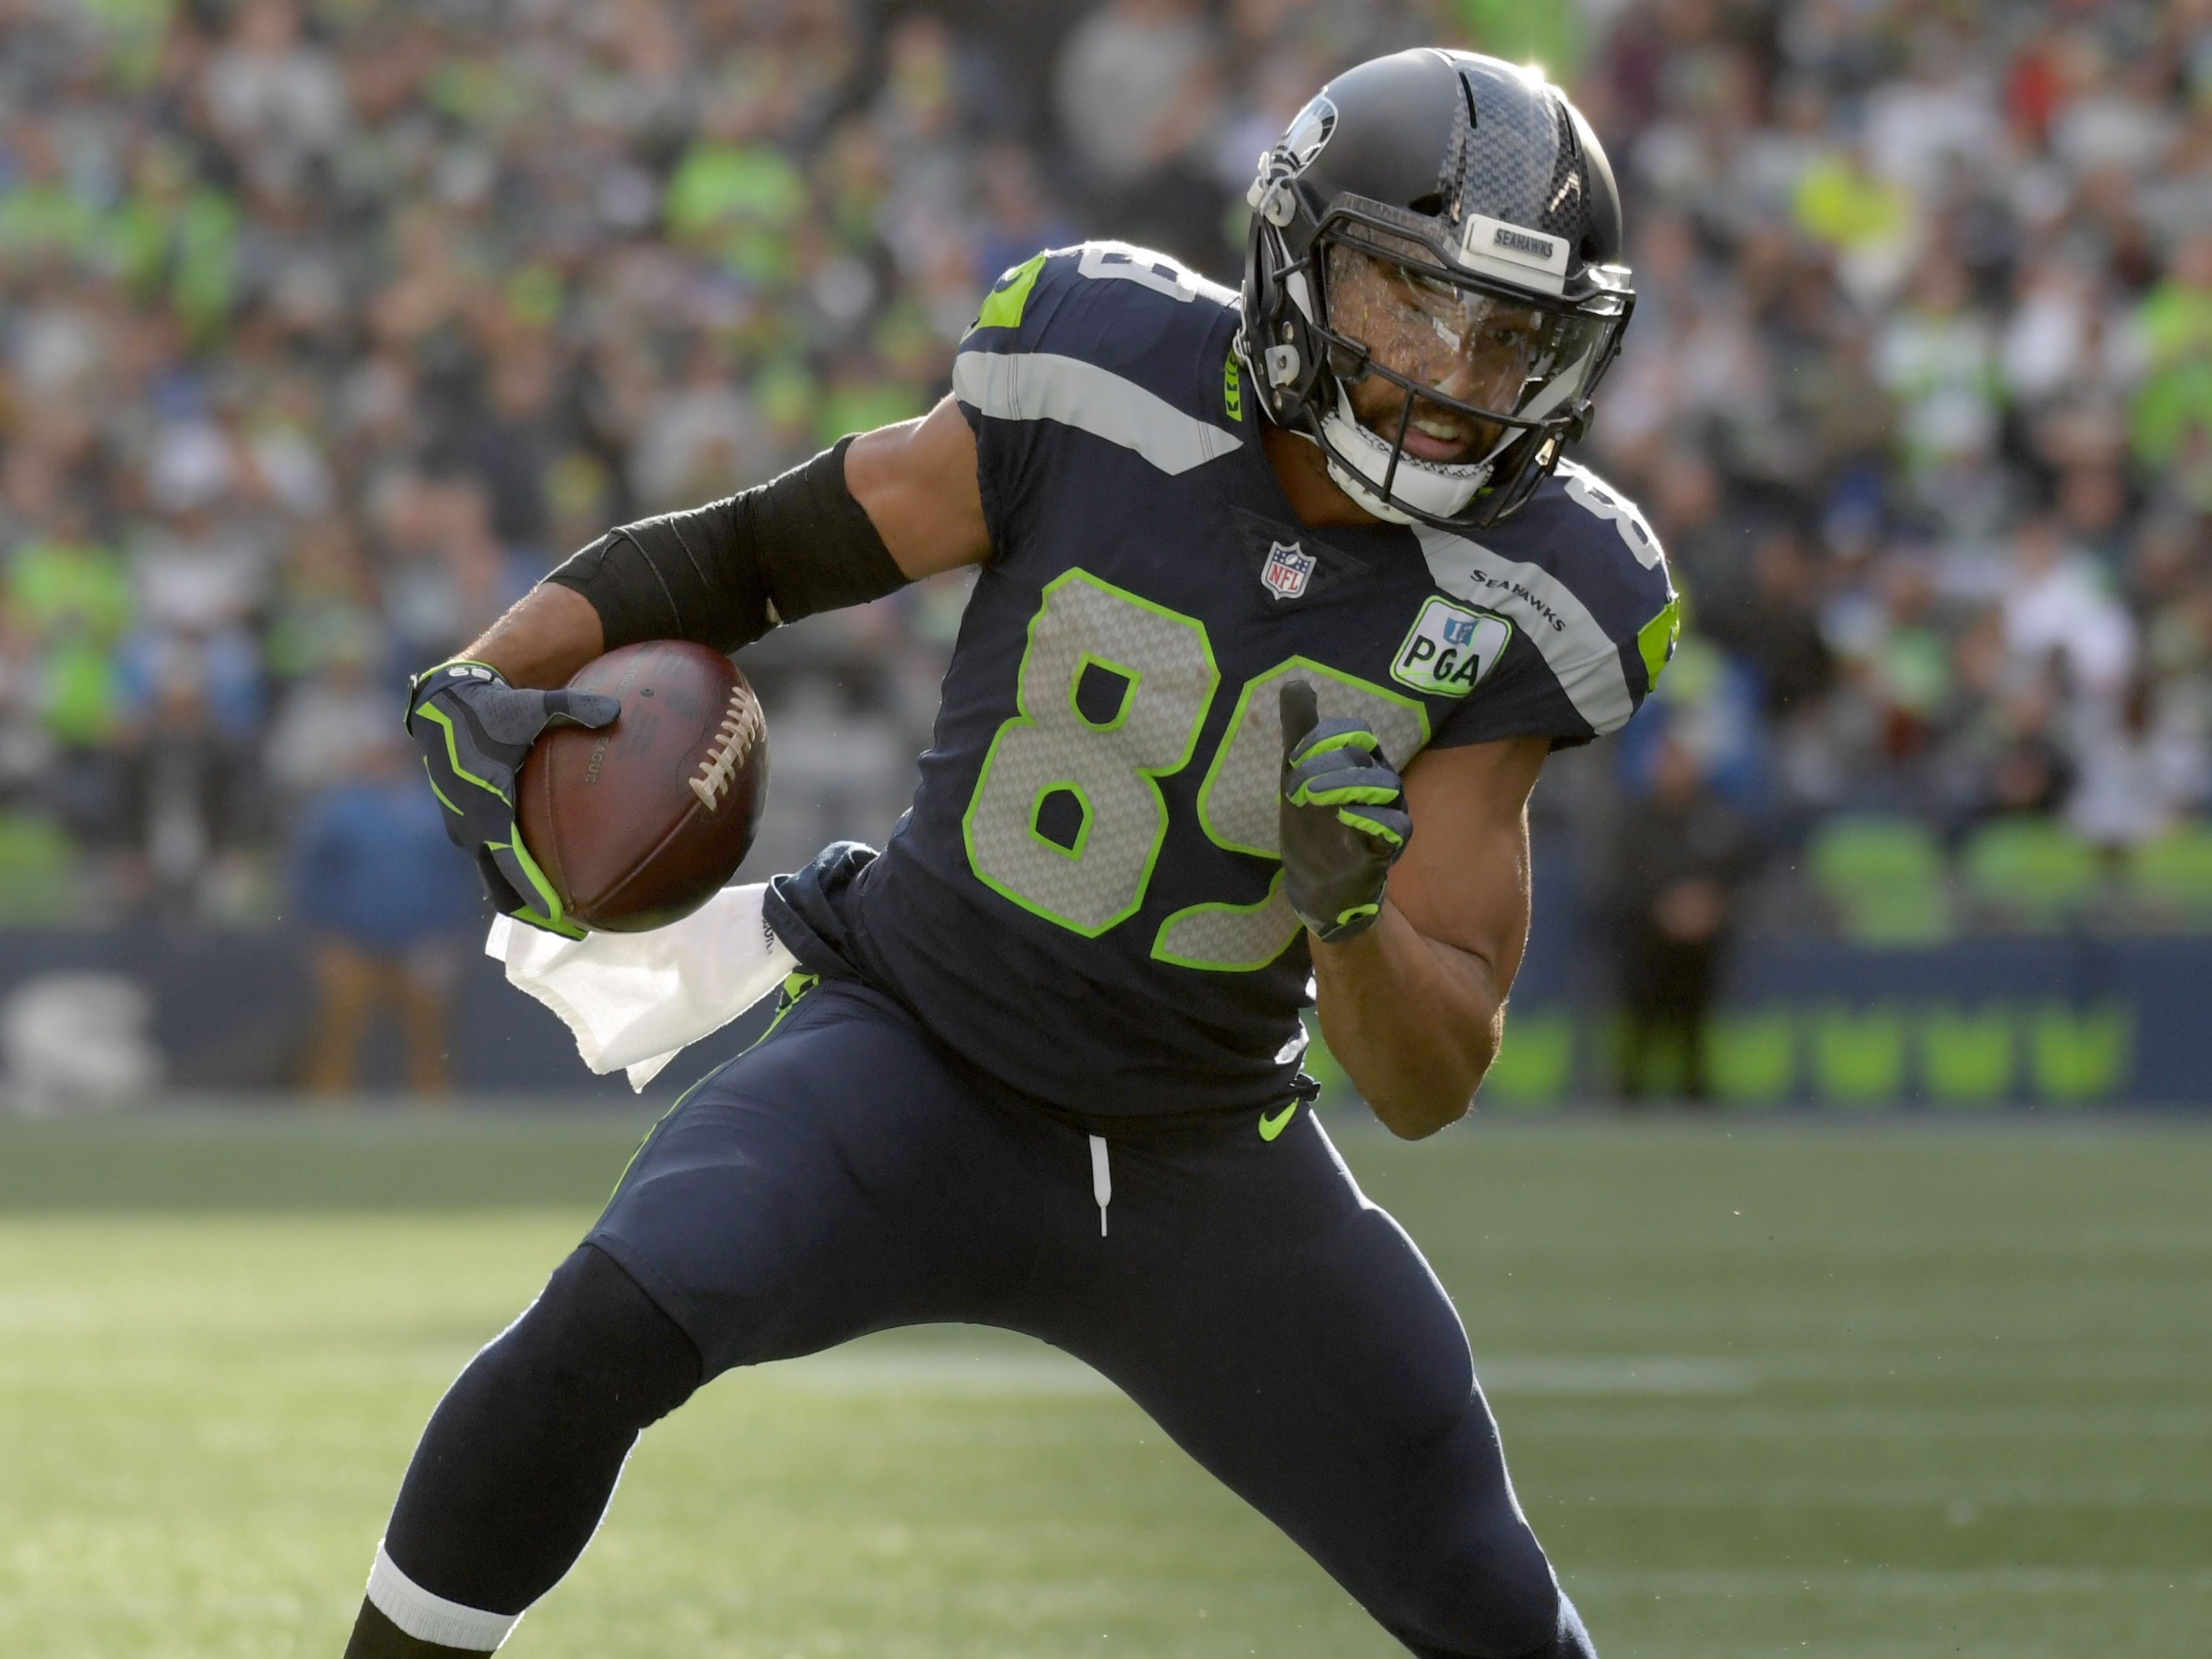 14. Seahawks (4-4) | Last game: Lost to the Chargers, 25-17 | Previous ranking: 12